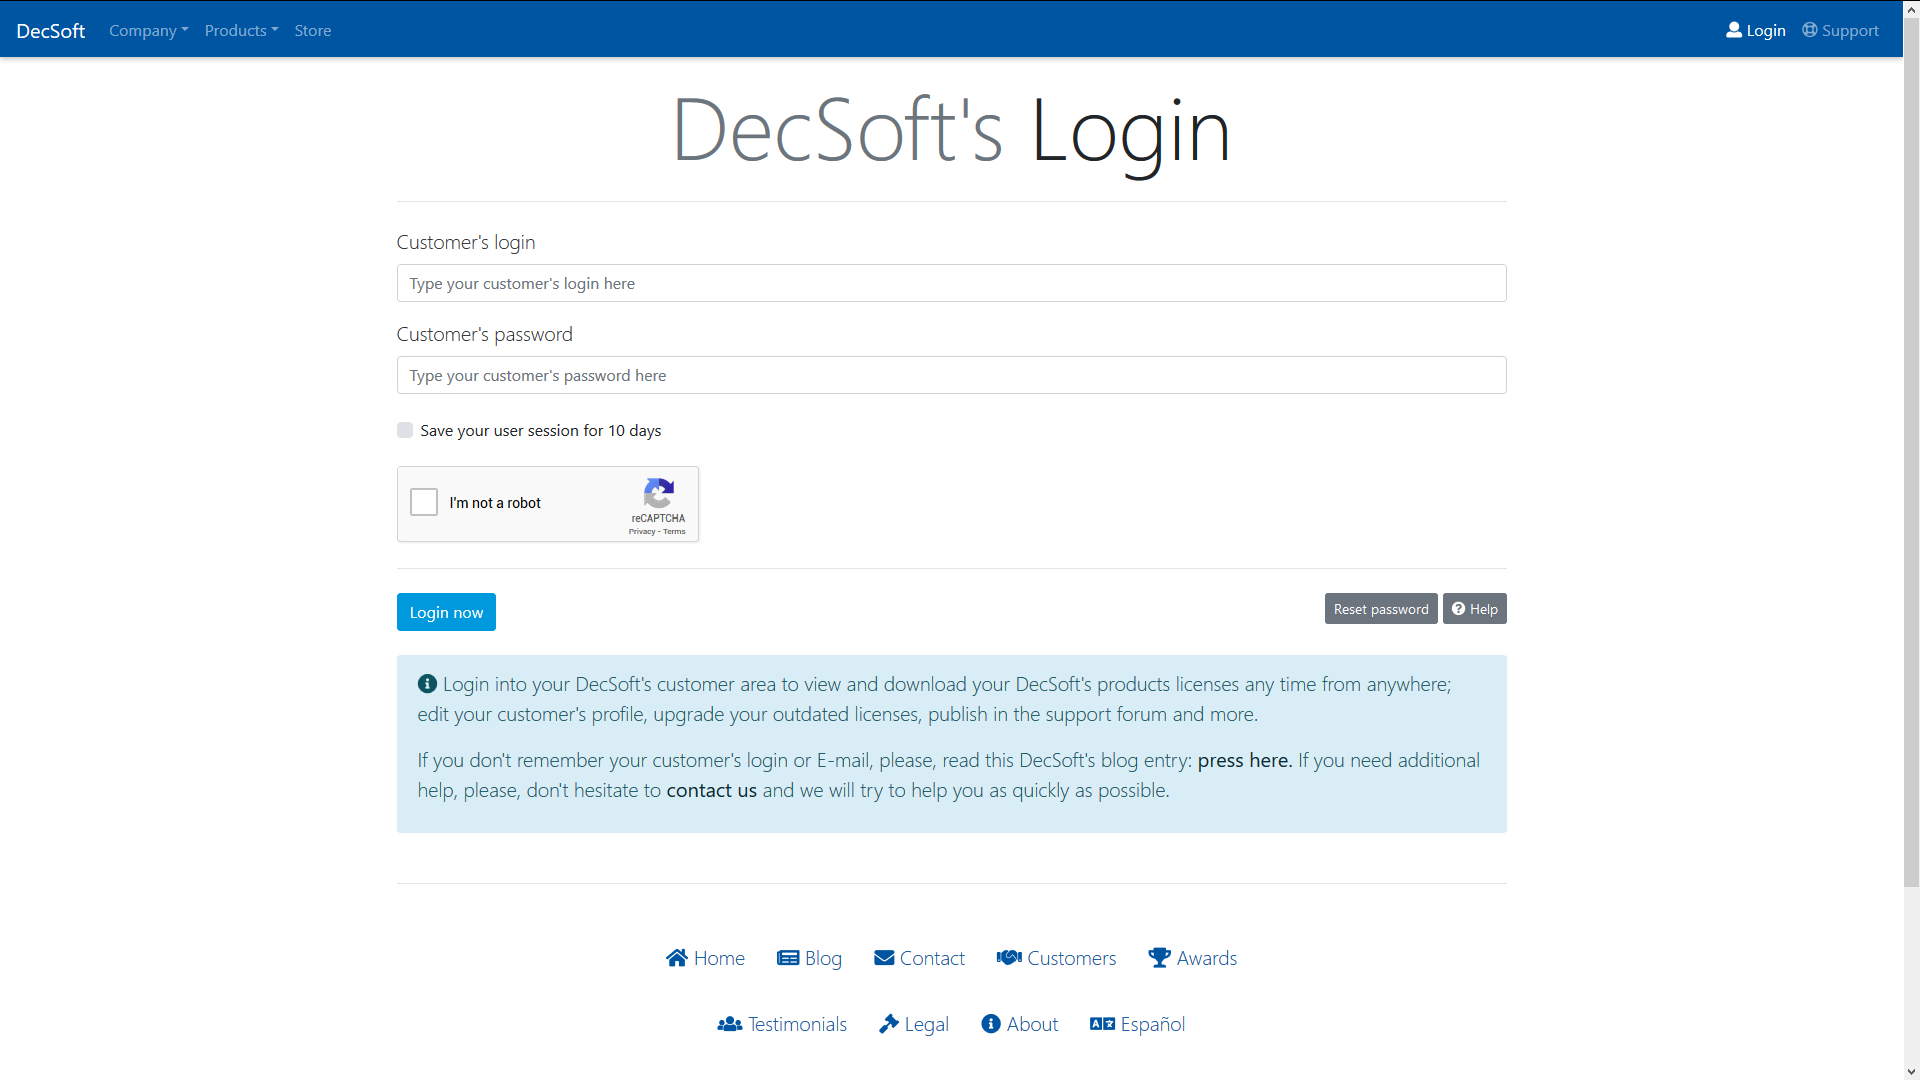 The DecSoft's reset customer's password form